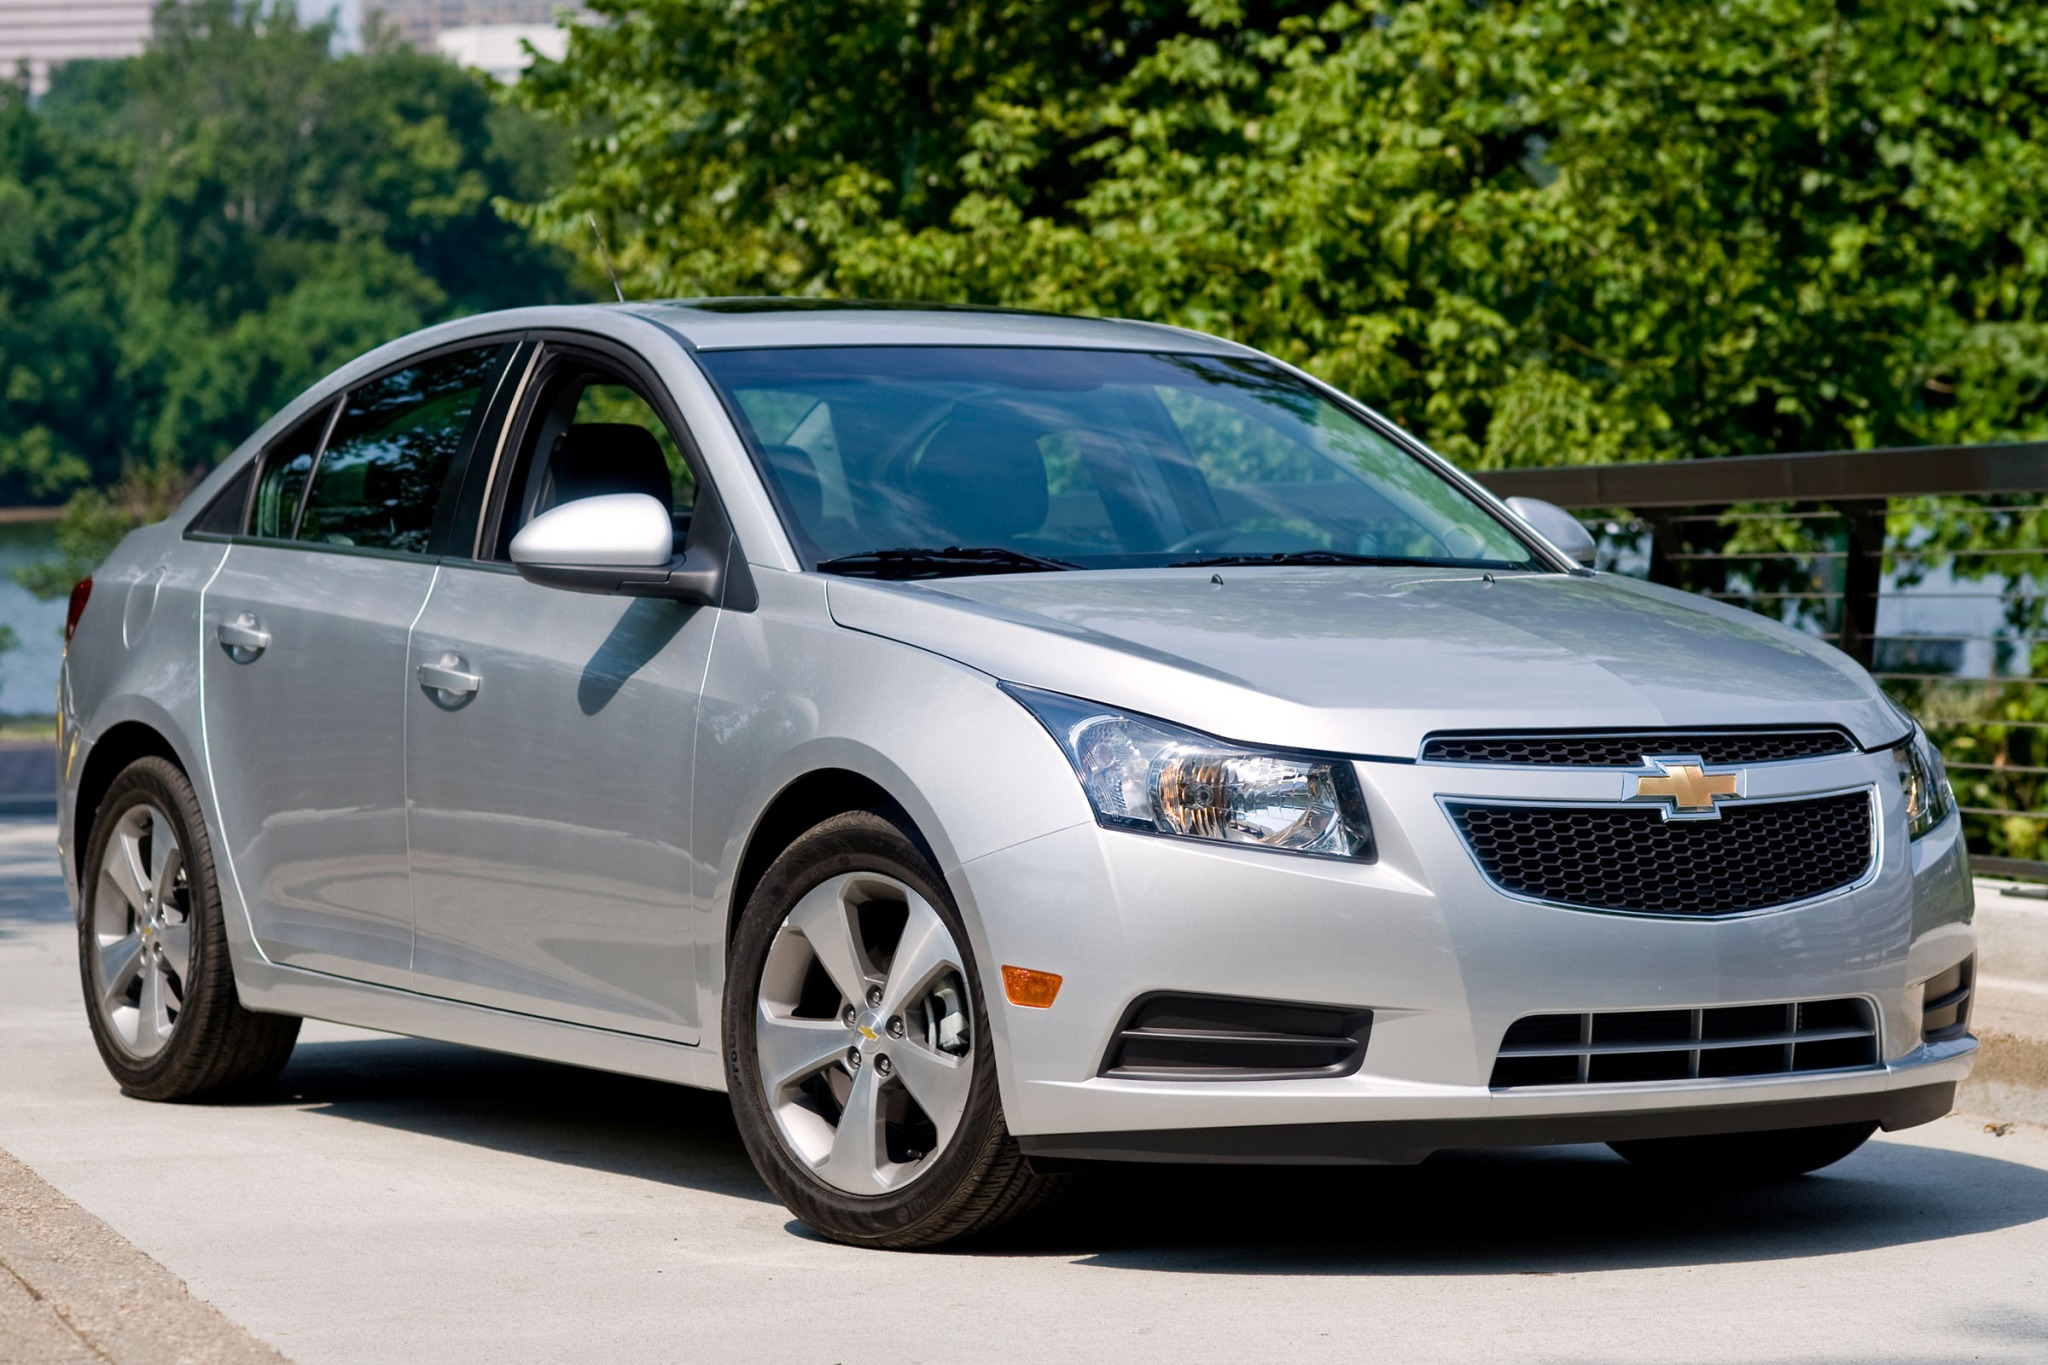 kingstree all photo sc cruze msrp vehicle chevrolet in vehicles vehiclesearchresults for sale